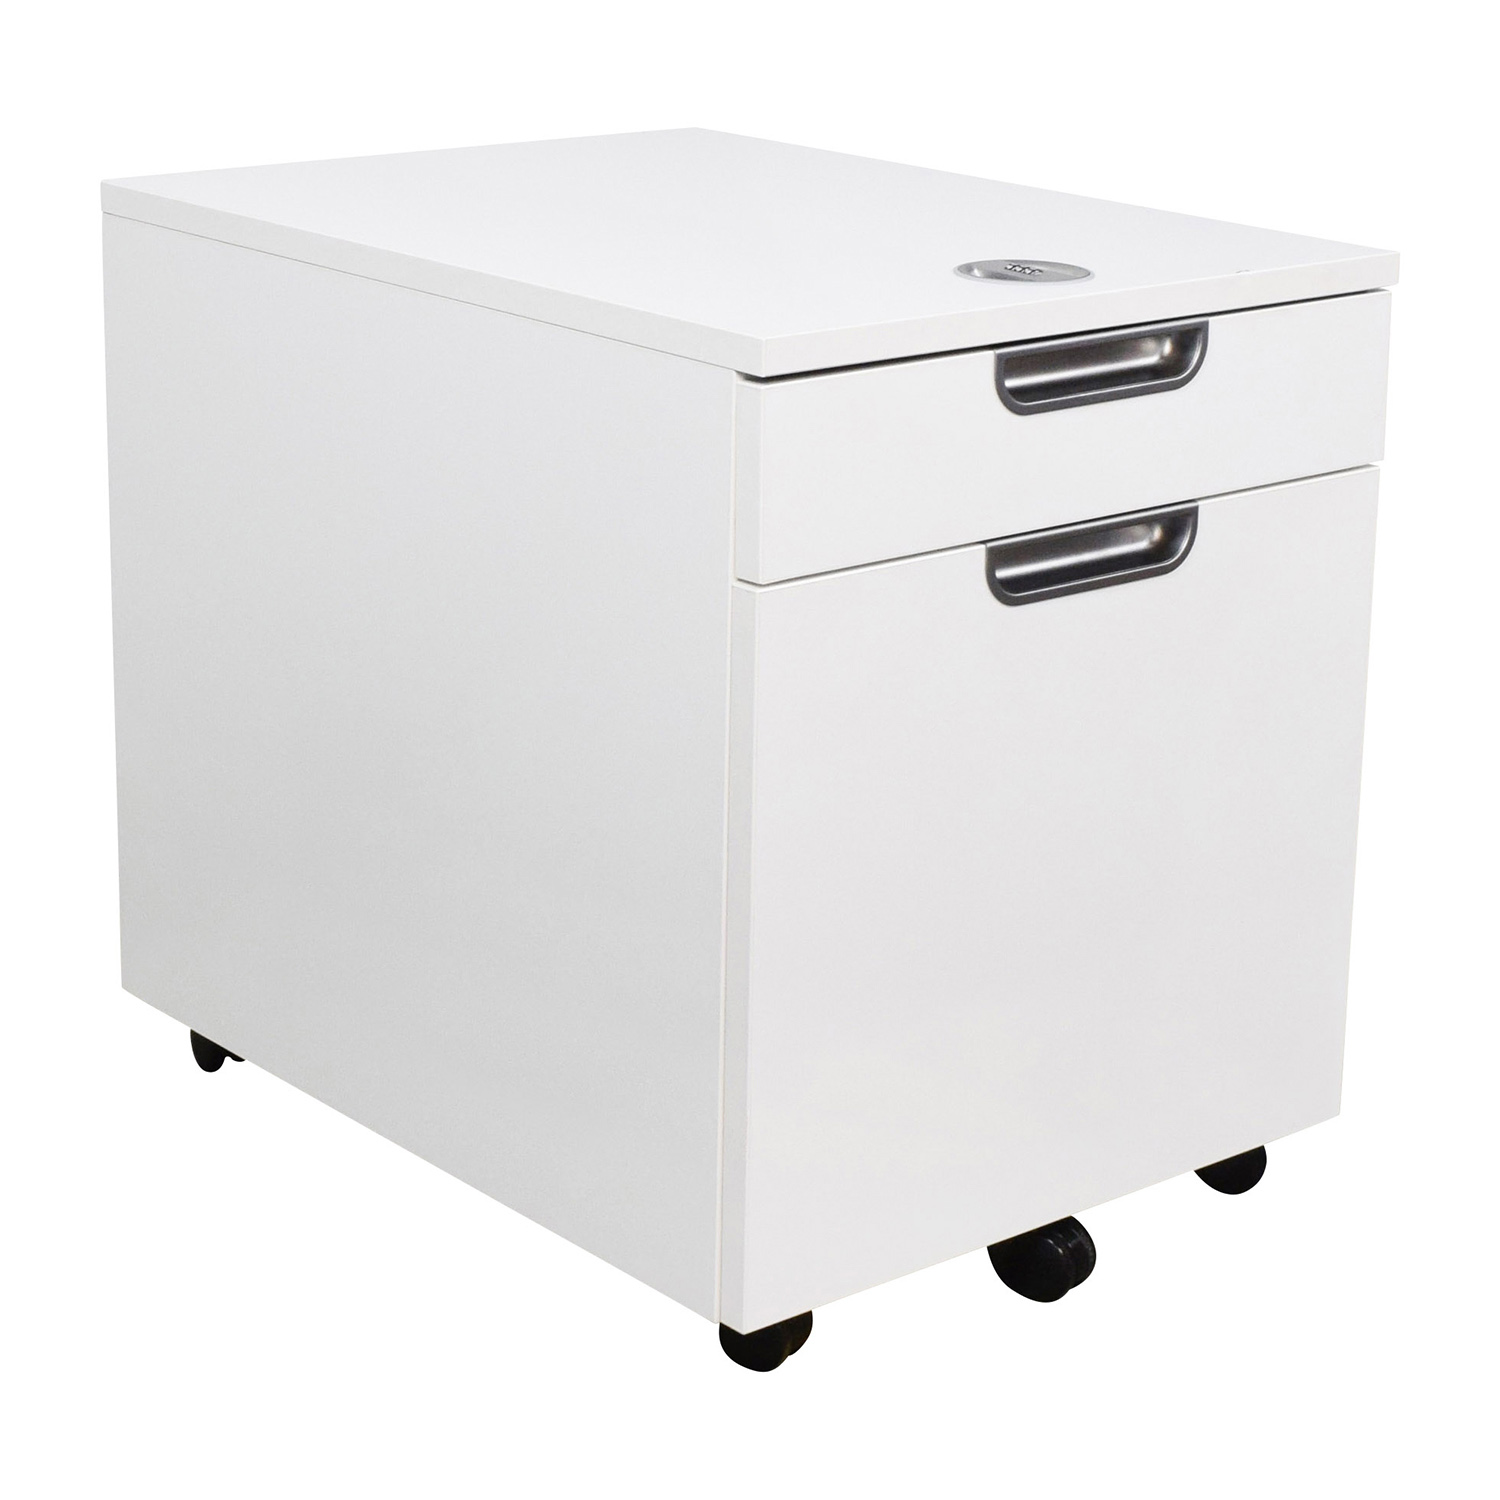 82 Off Ikea Galant White Combination Lock File Cabinet Tables